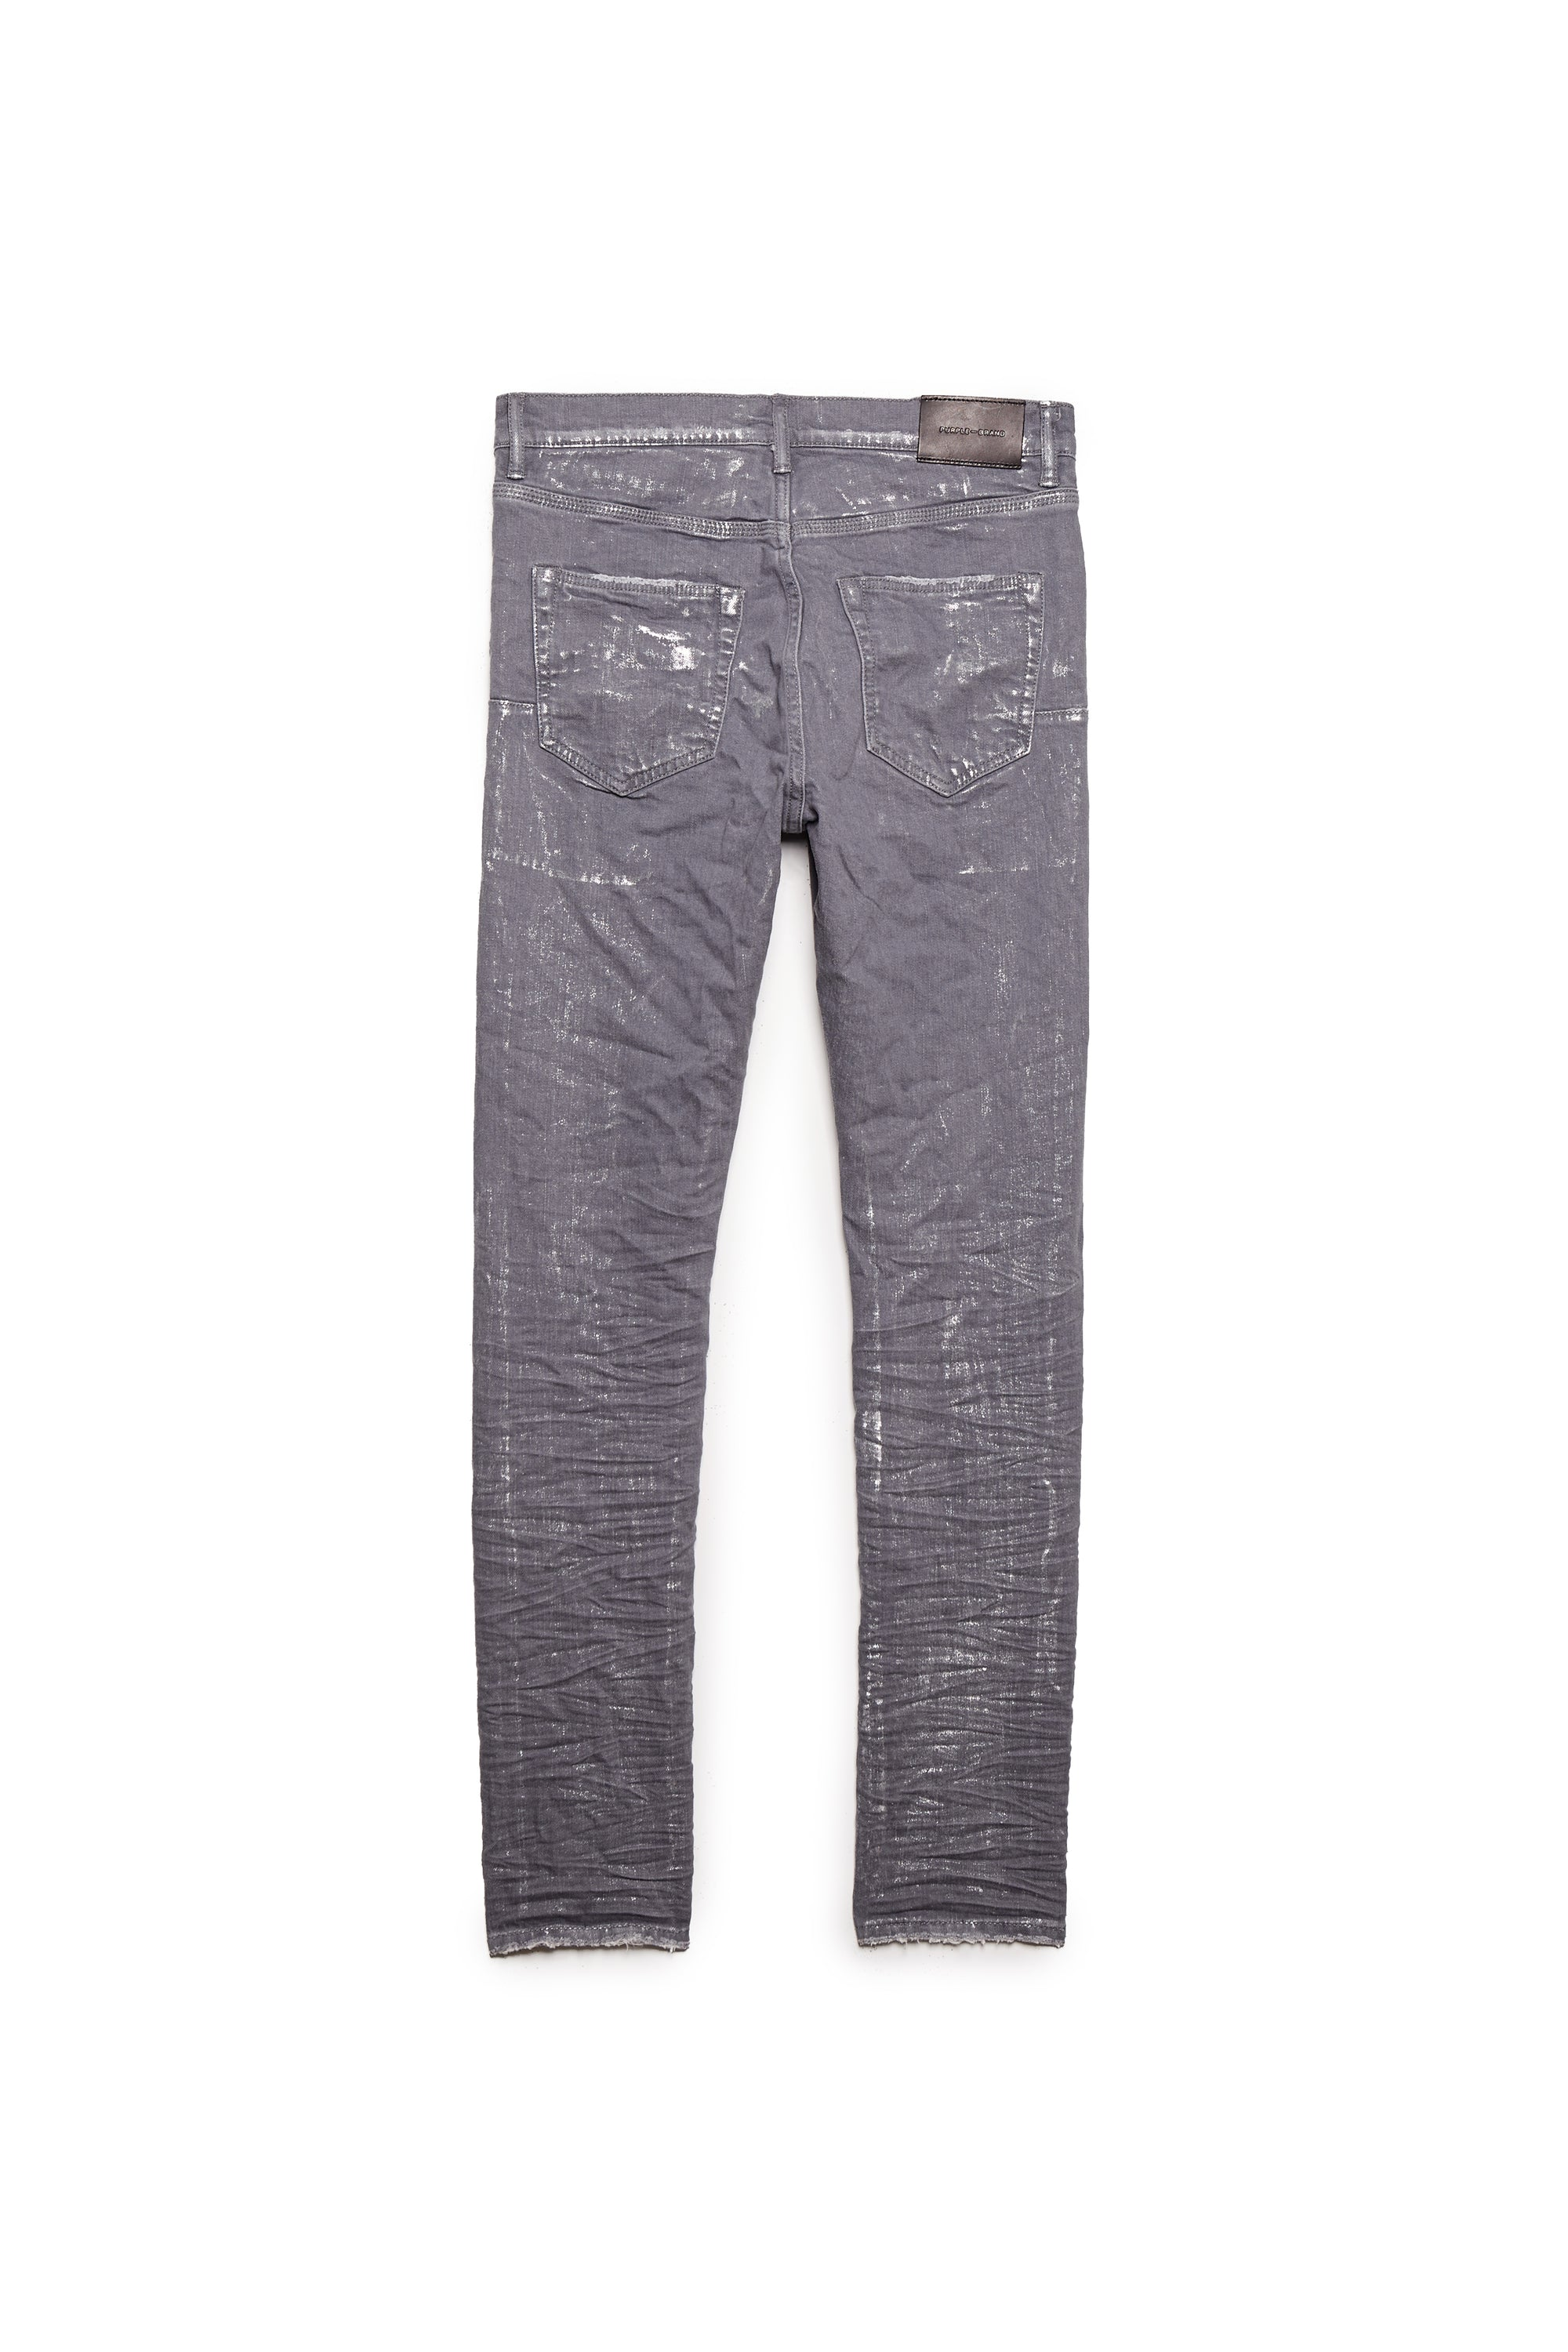 P001 LOW RISE WITH SLIM LEG - Grey Metallic Silver